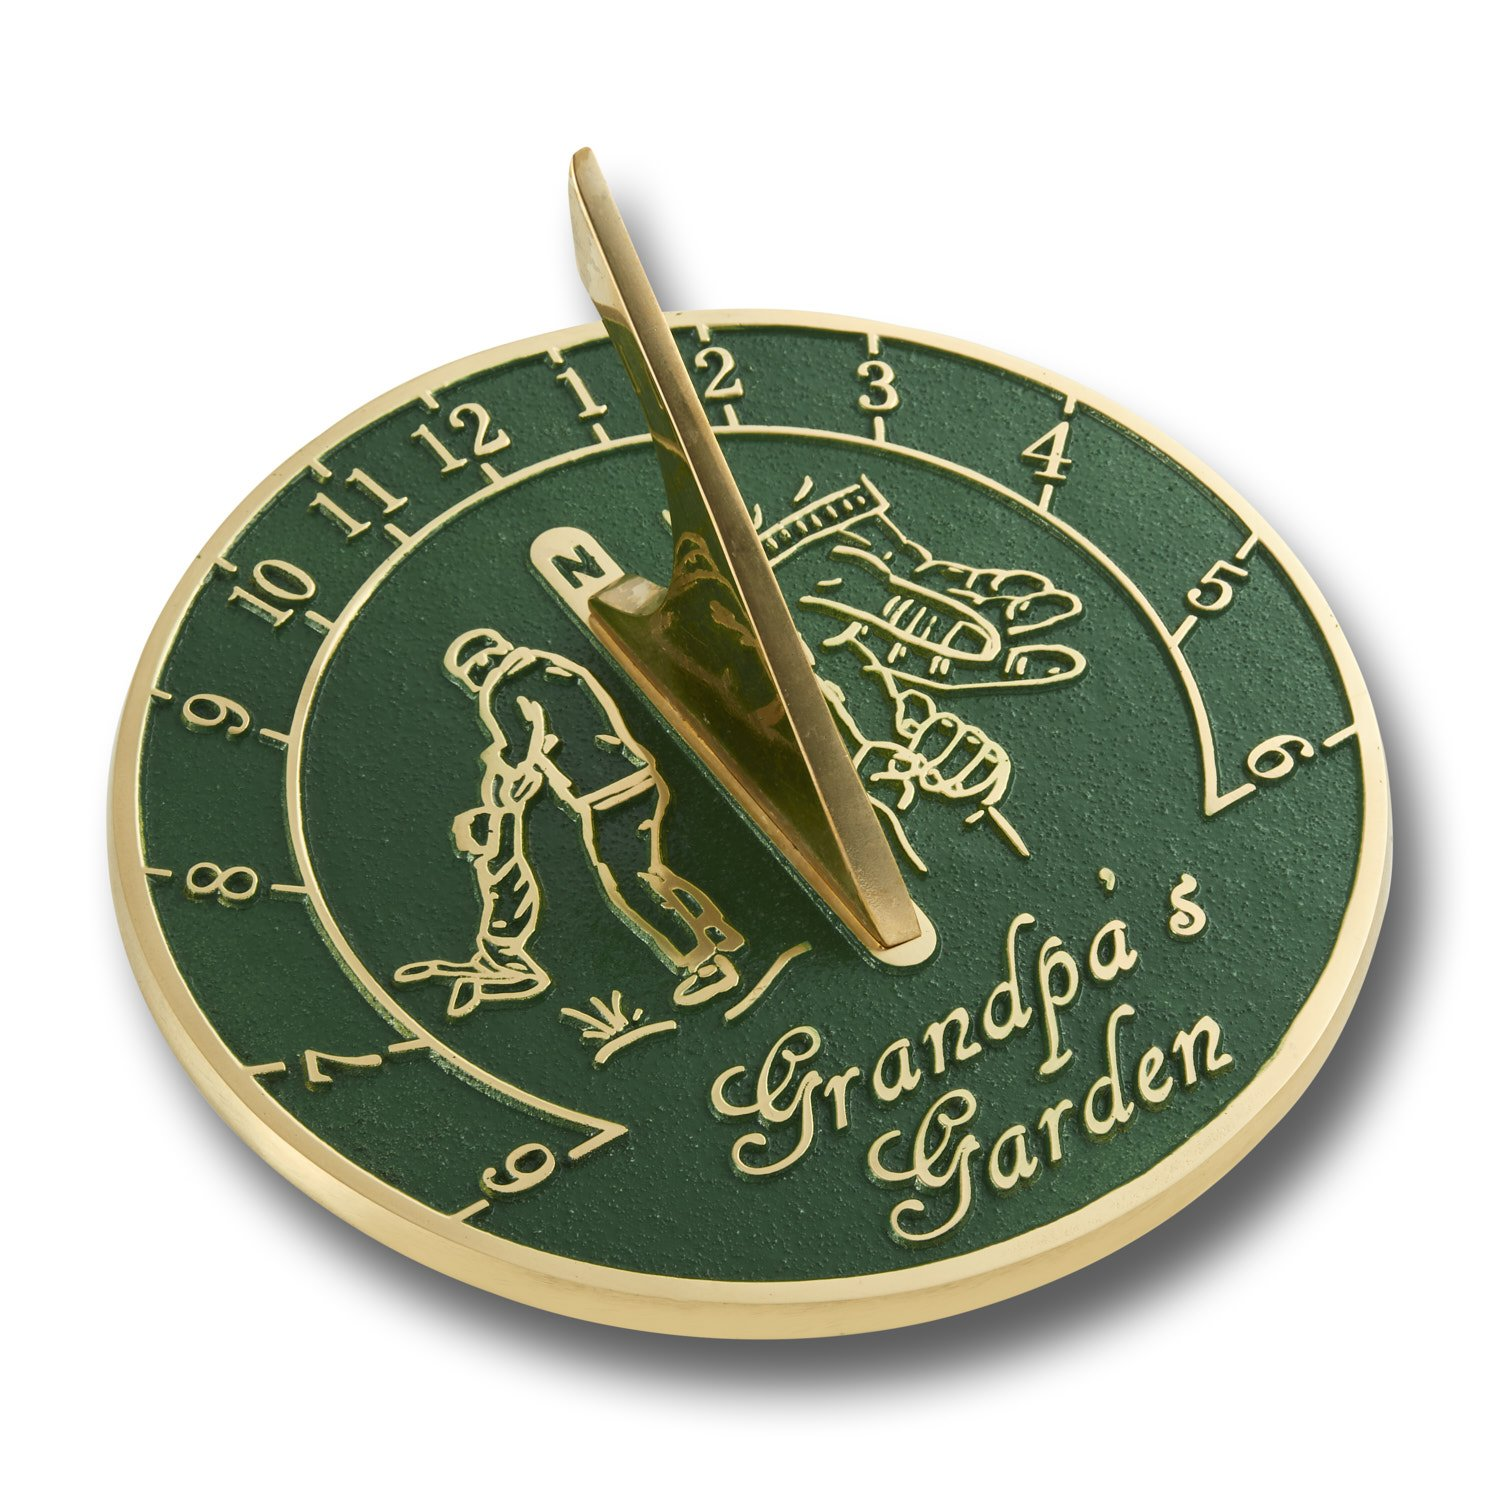 The Metal Foundry Grandpa's Garden Sundial Gift. Looking For The Best Present Idea For A Special Grandpa For His Birthday, Christmas Or Fathers Day?